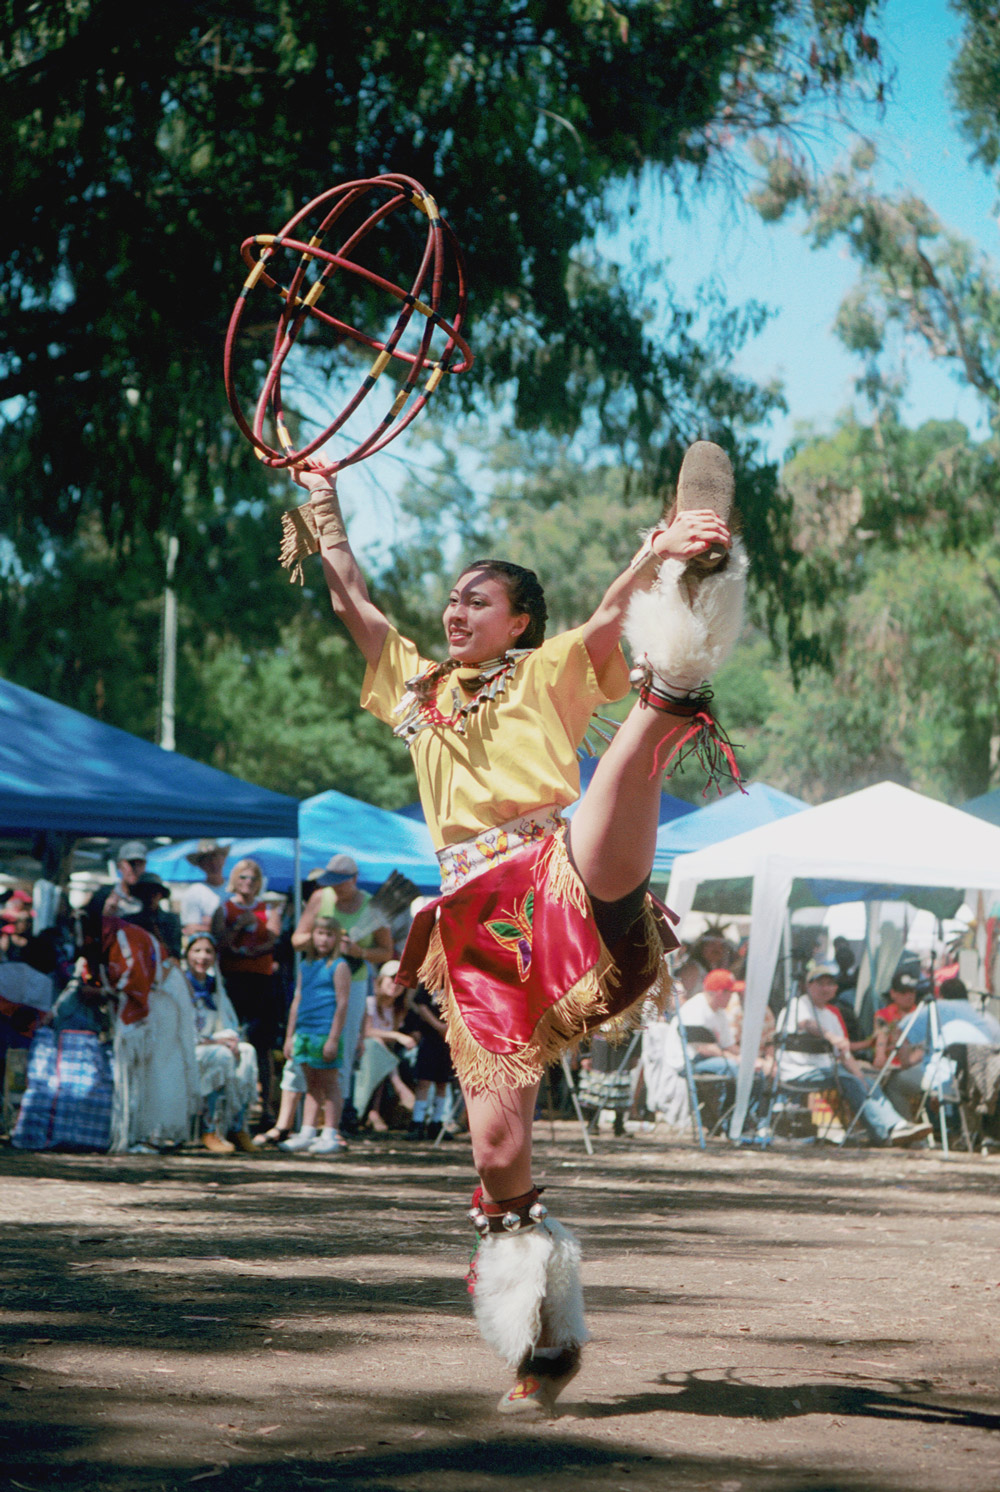 Ginger Sykes Torres performing a dance on Stanford campus.